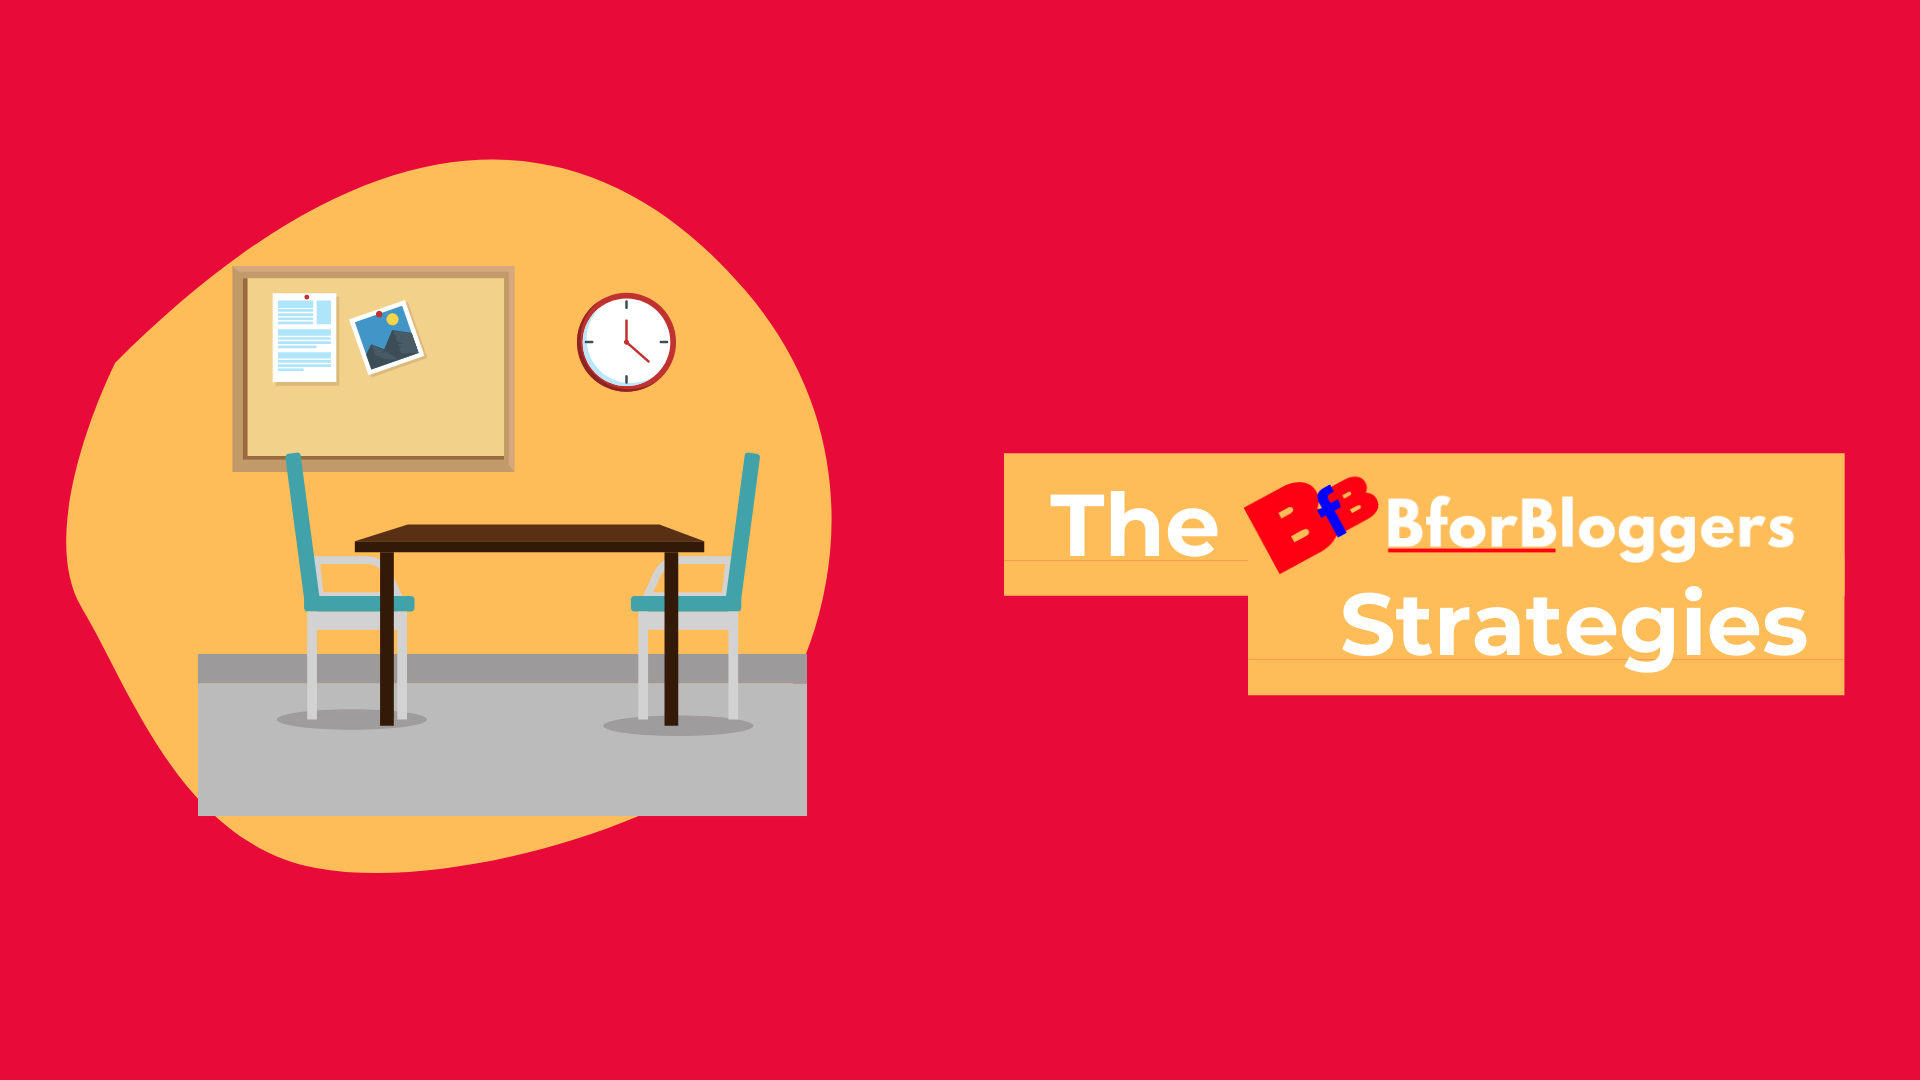 The-BforBloggers-strategies-guides-1